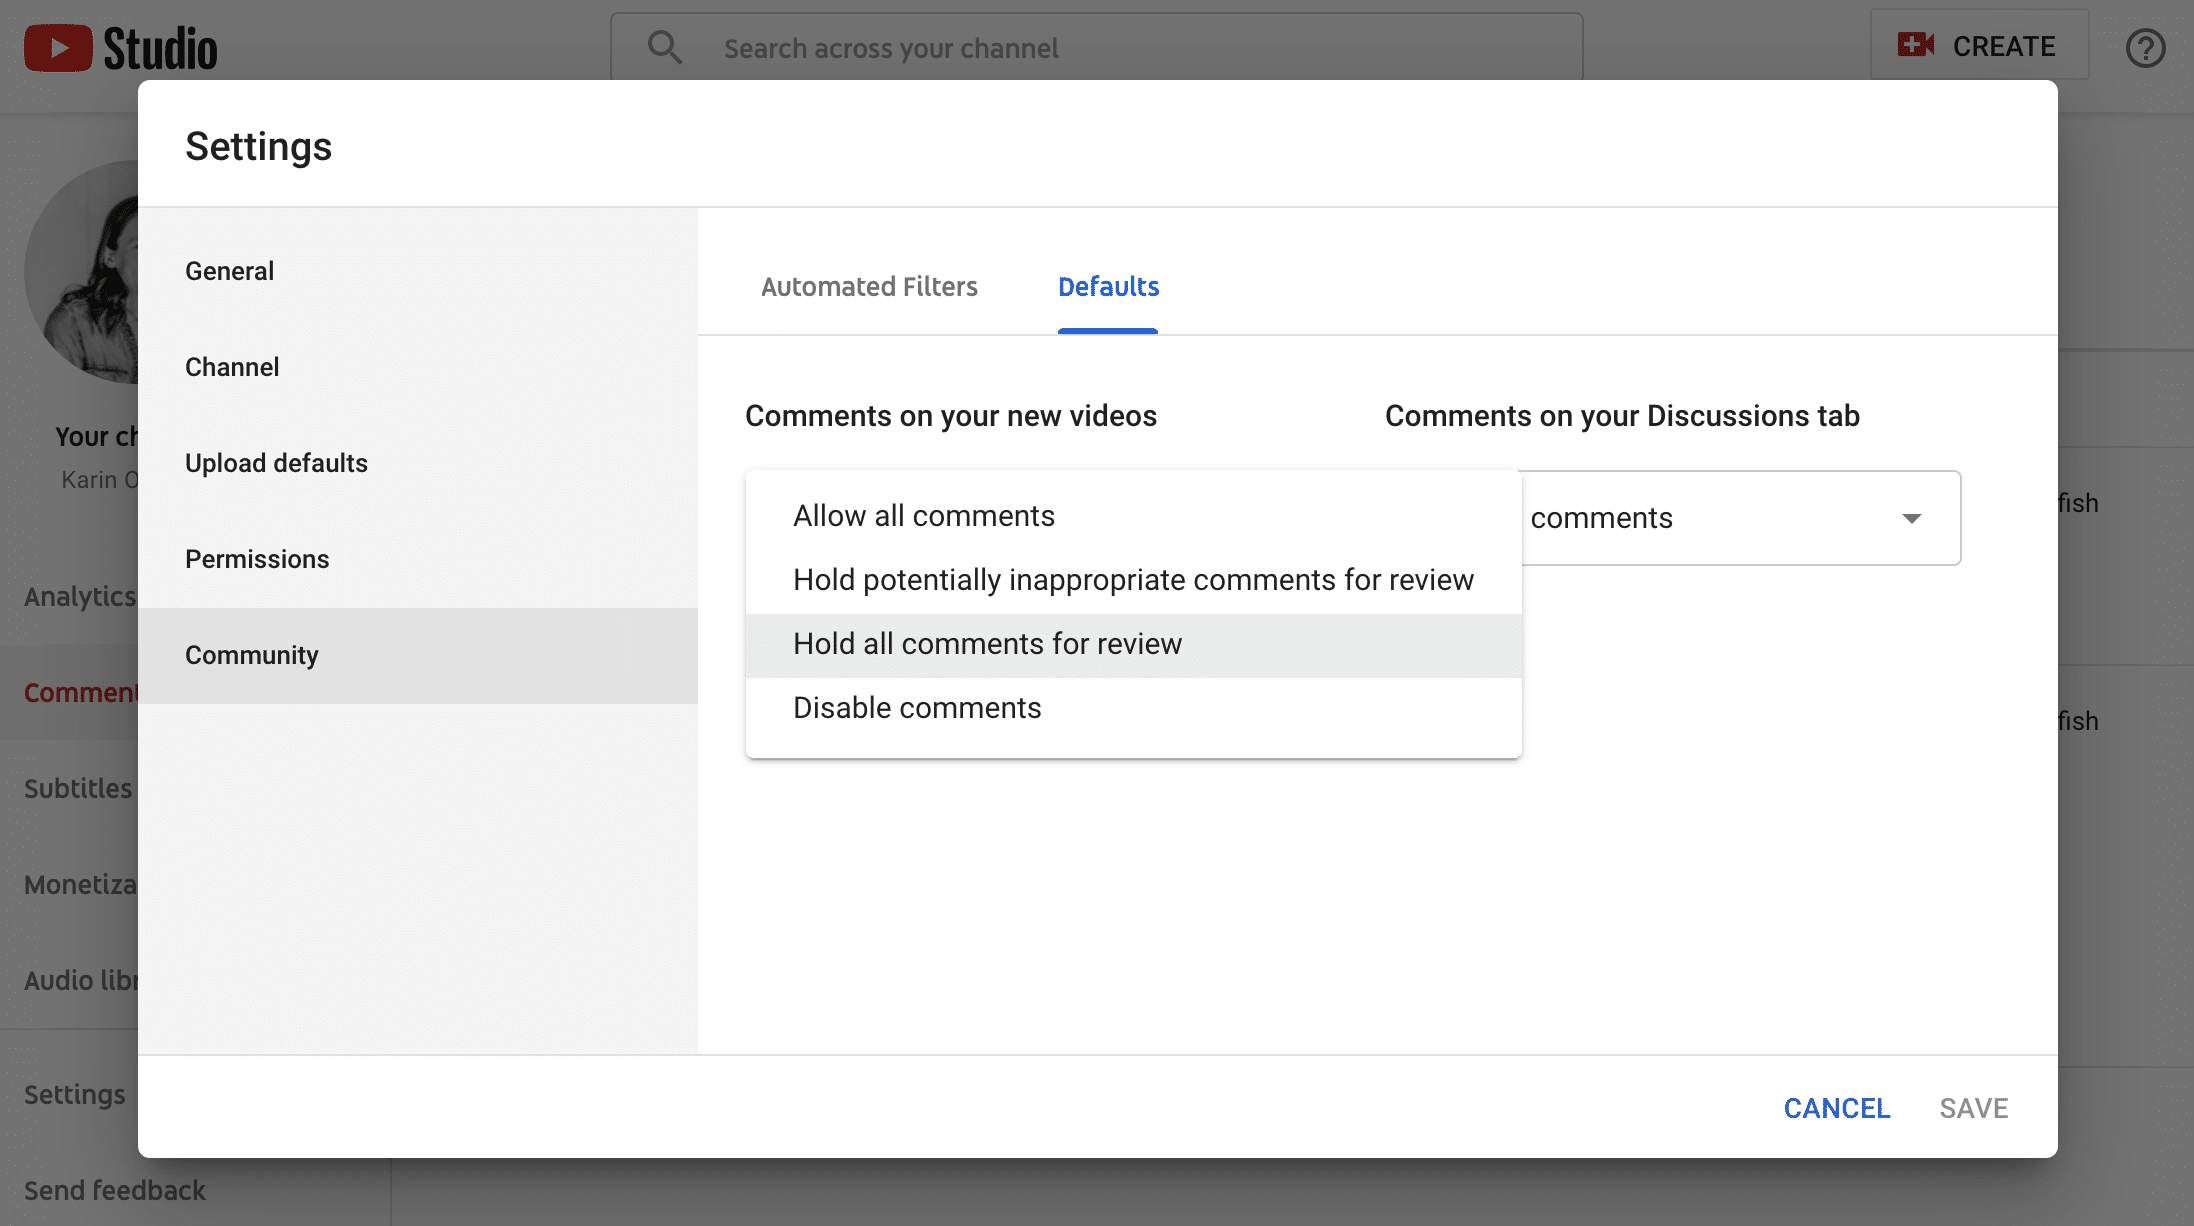 YouTube comments setting options